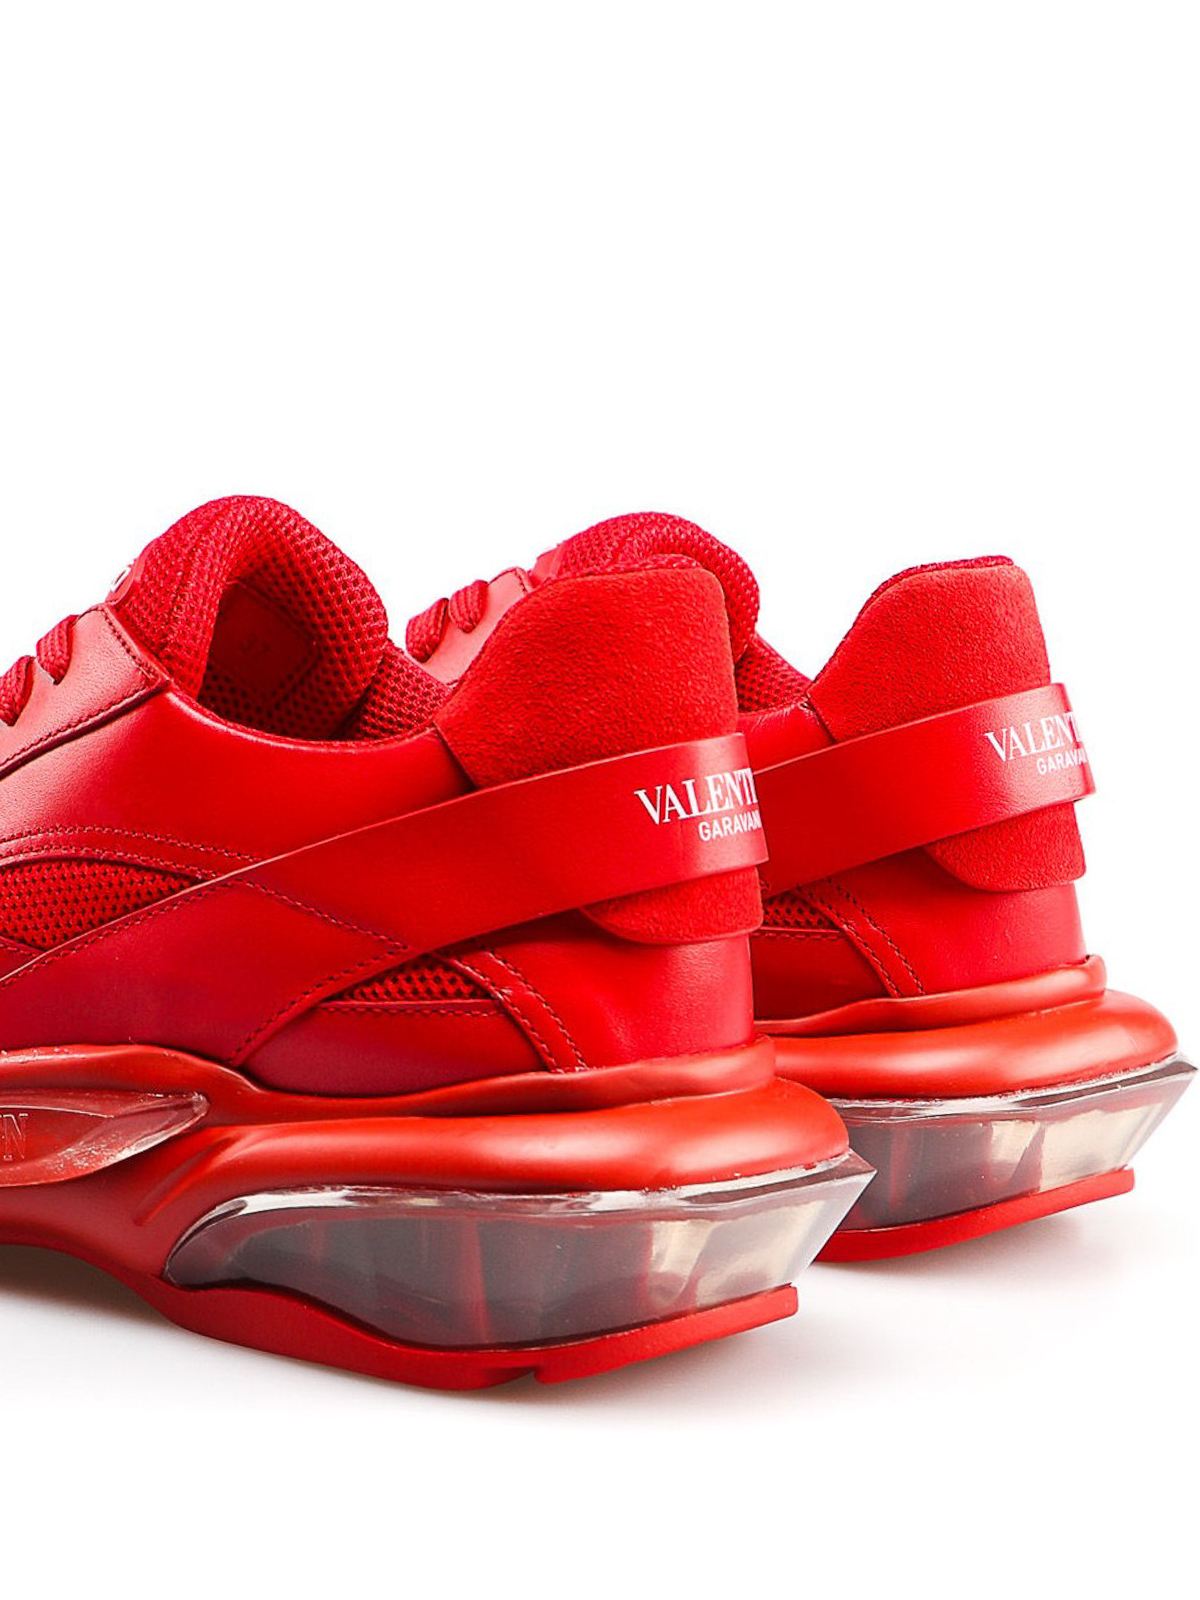 Valentino Garavani , Bounce red leather sneakers , trainers